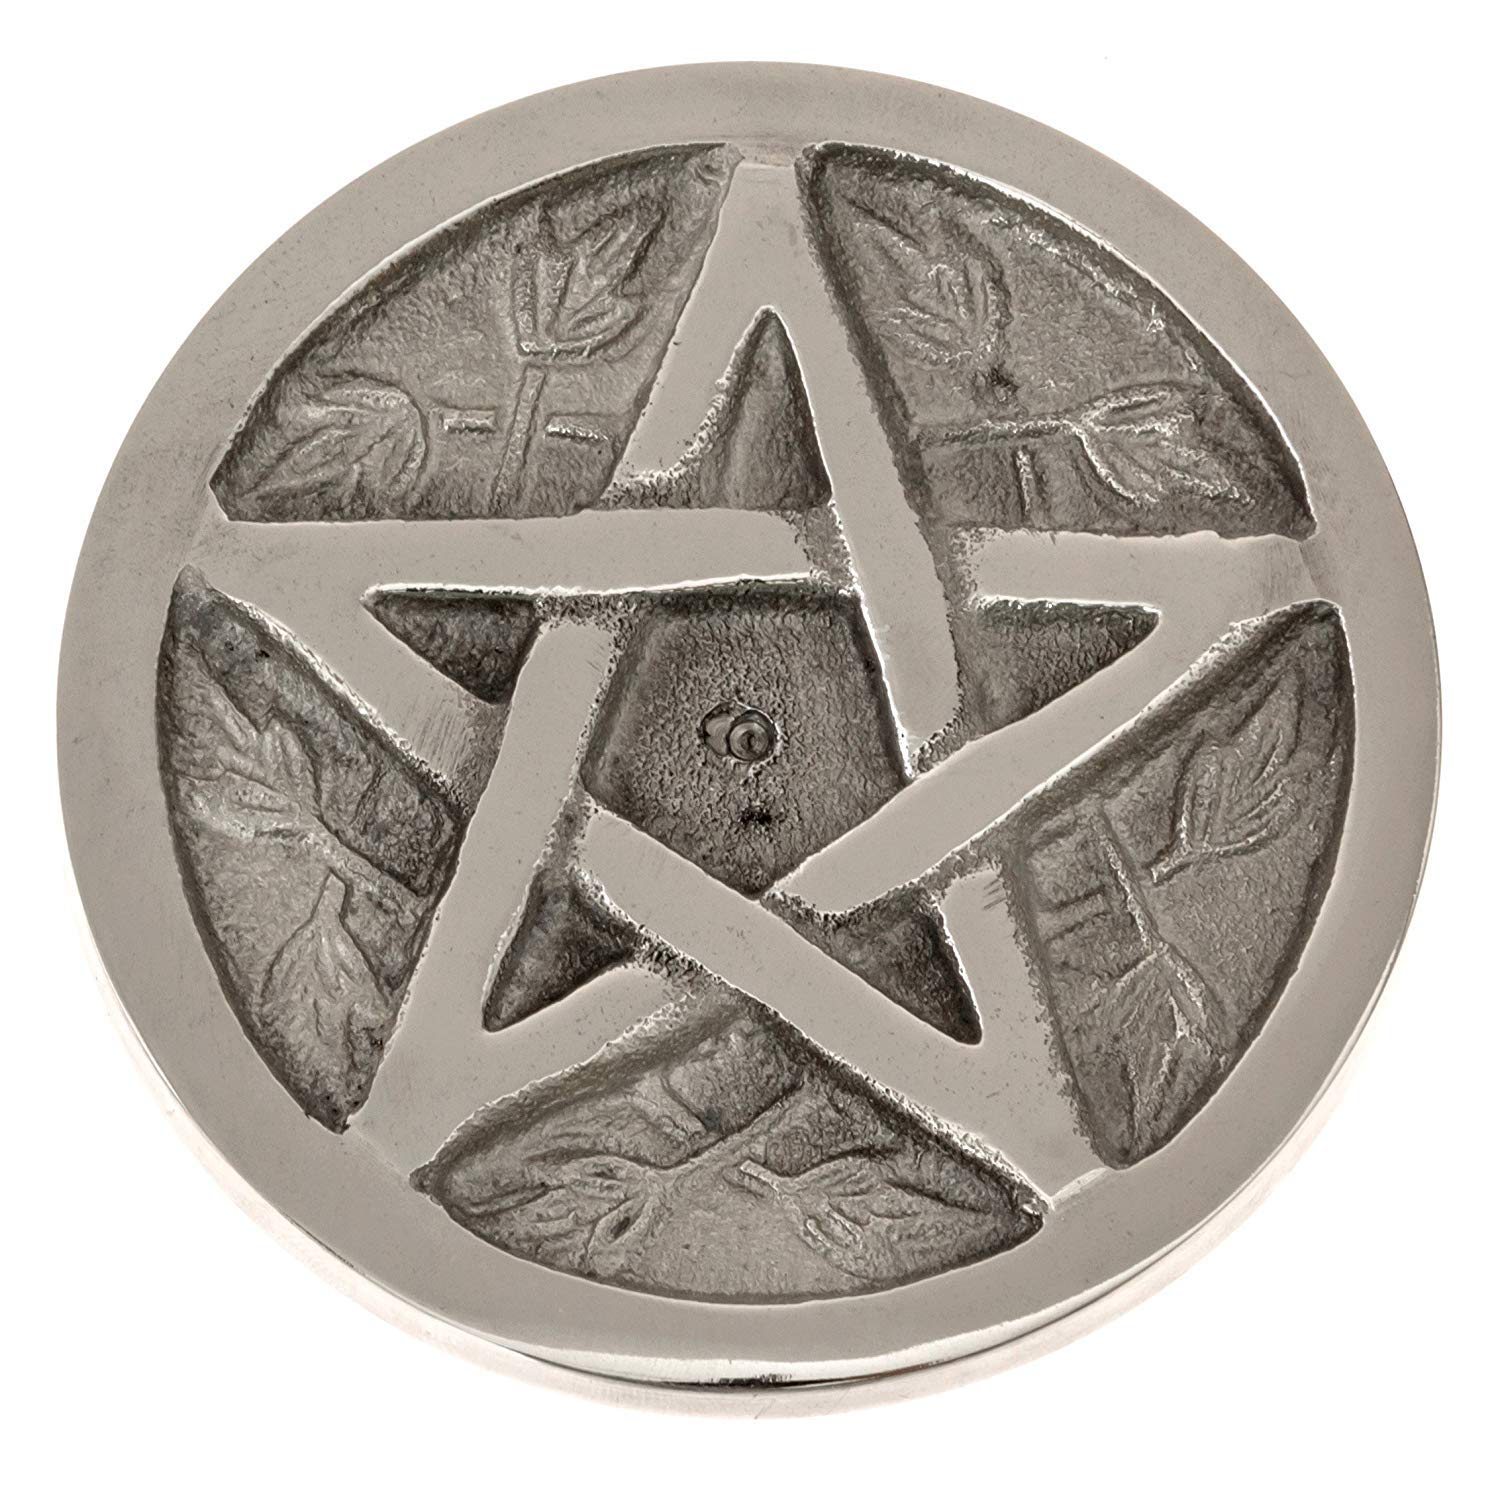 Alternative Imagination Deluxe Wiccan Altar Supply Kit Featuring Pentagram Altar Table by Alternative Imagination (Image #7)